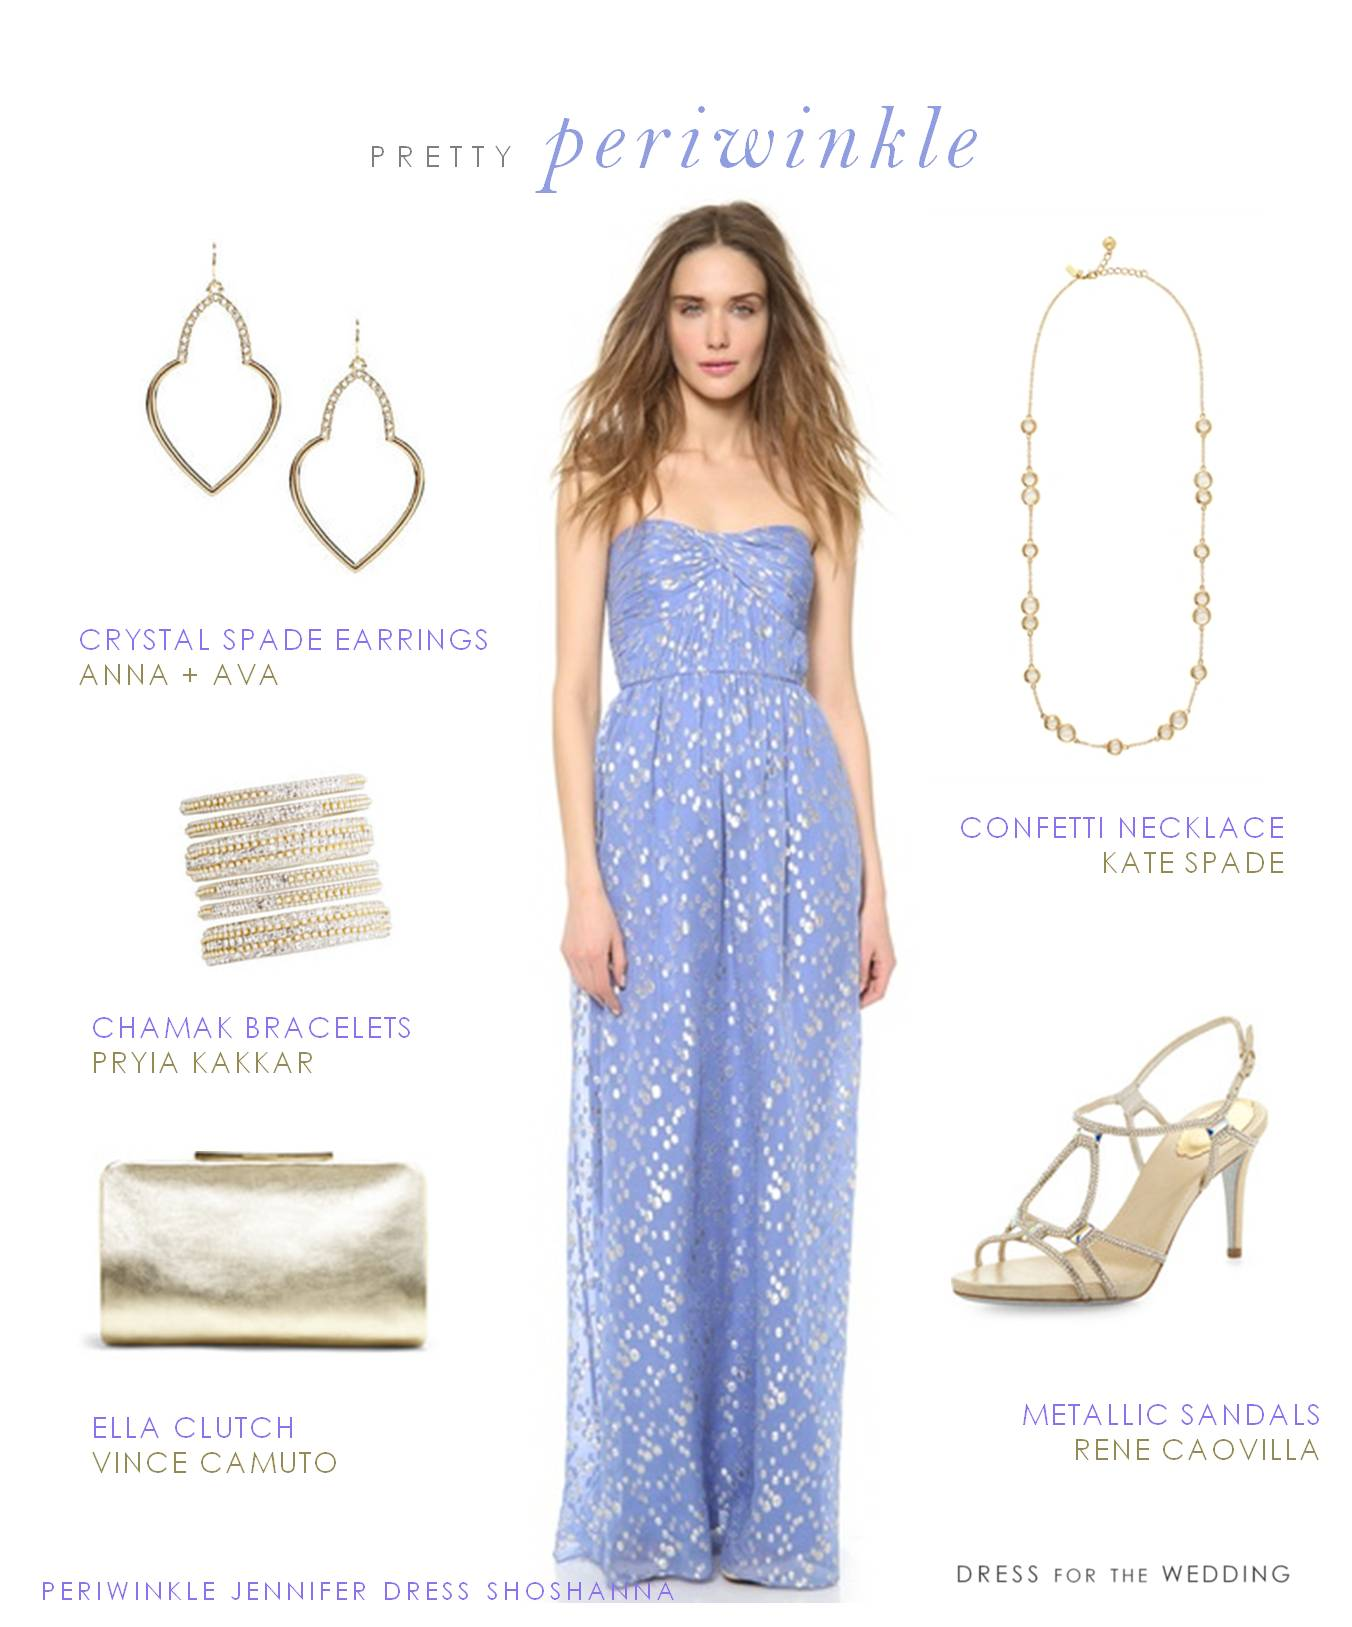 Periwinkle Gown by Shoshanna